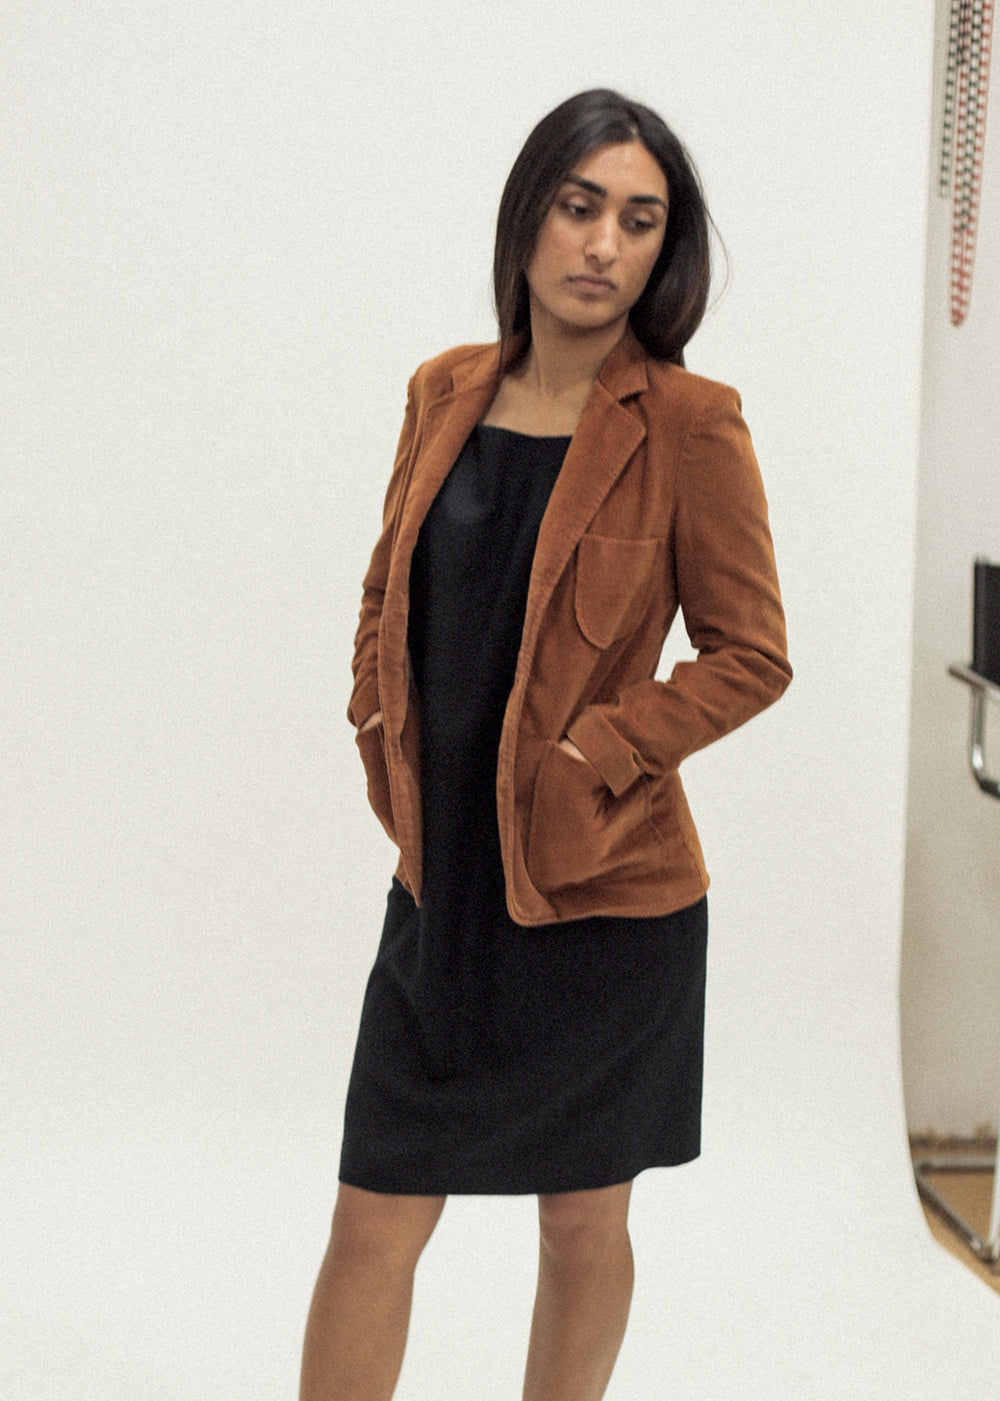 Pre by New Classics Vintage Corduroy Blazer — Shop sustainable fashion and slow fashion at New Classics Studios